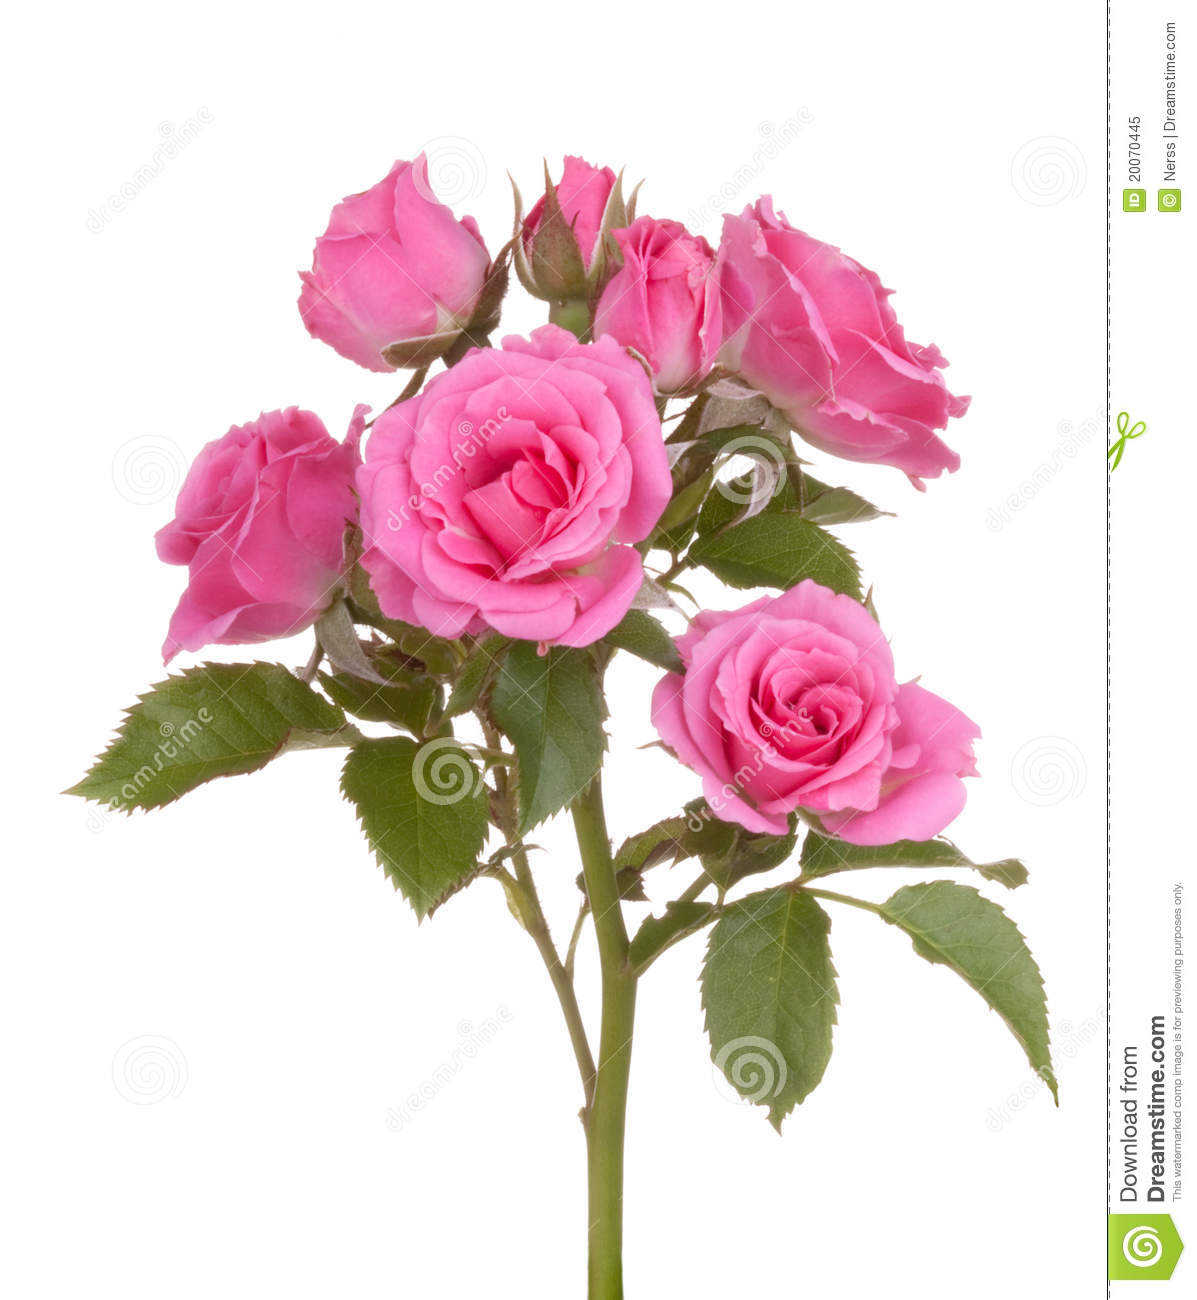 Roses Flowers Pink Rose Flower Stock Image Image Of Lively